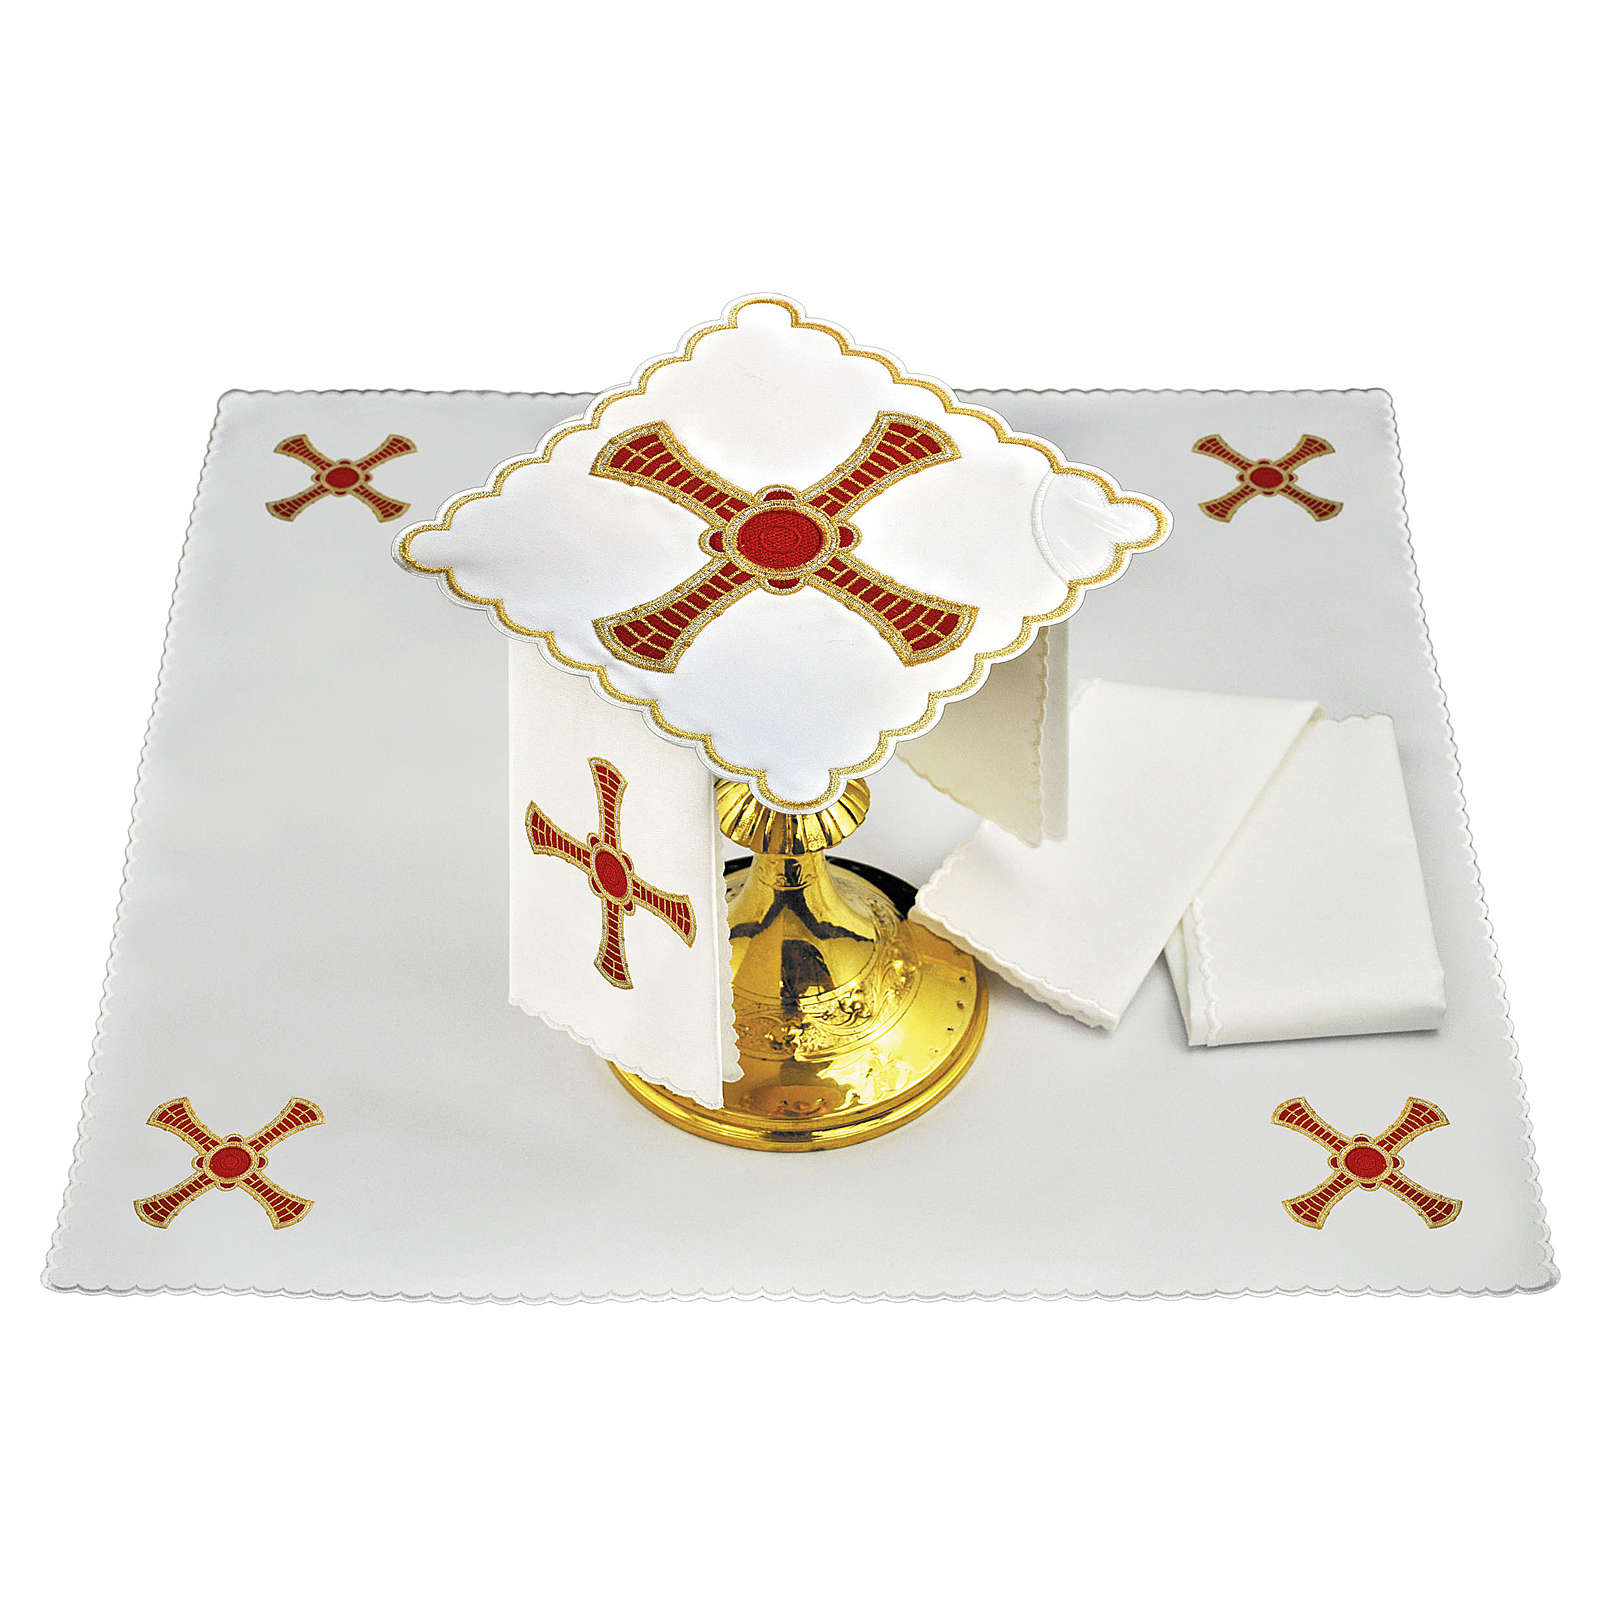 Altar linen red and gold cross, striped 4